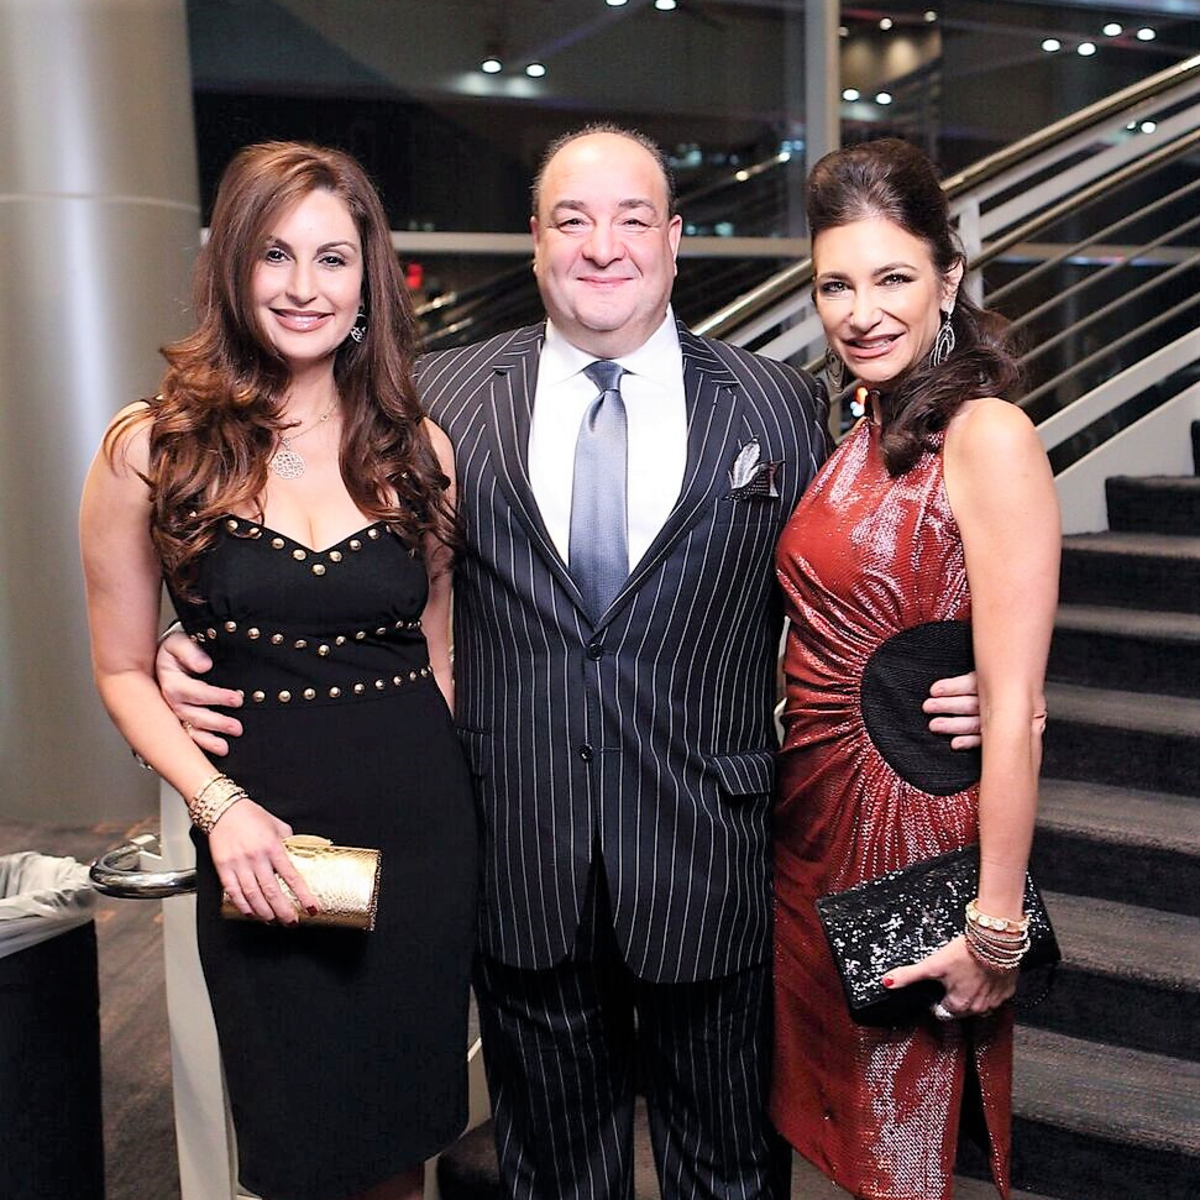 Una Notte-Co-Chairs Brigitte Kalai and Melissa Mithoff with Bashar Kalai